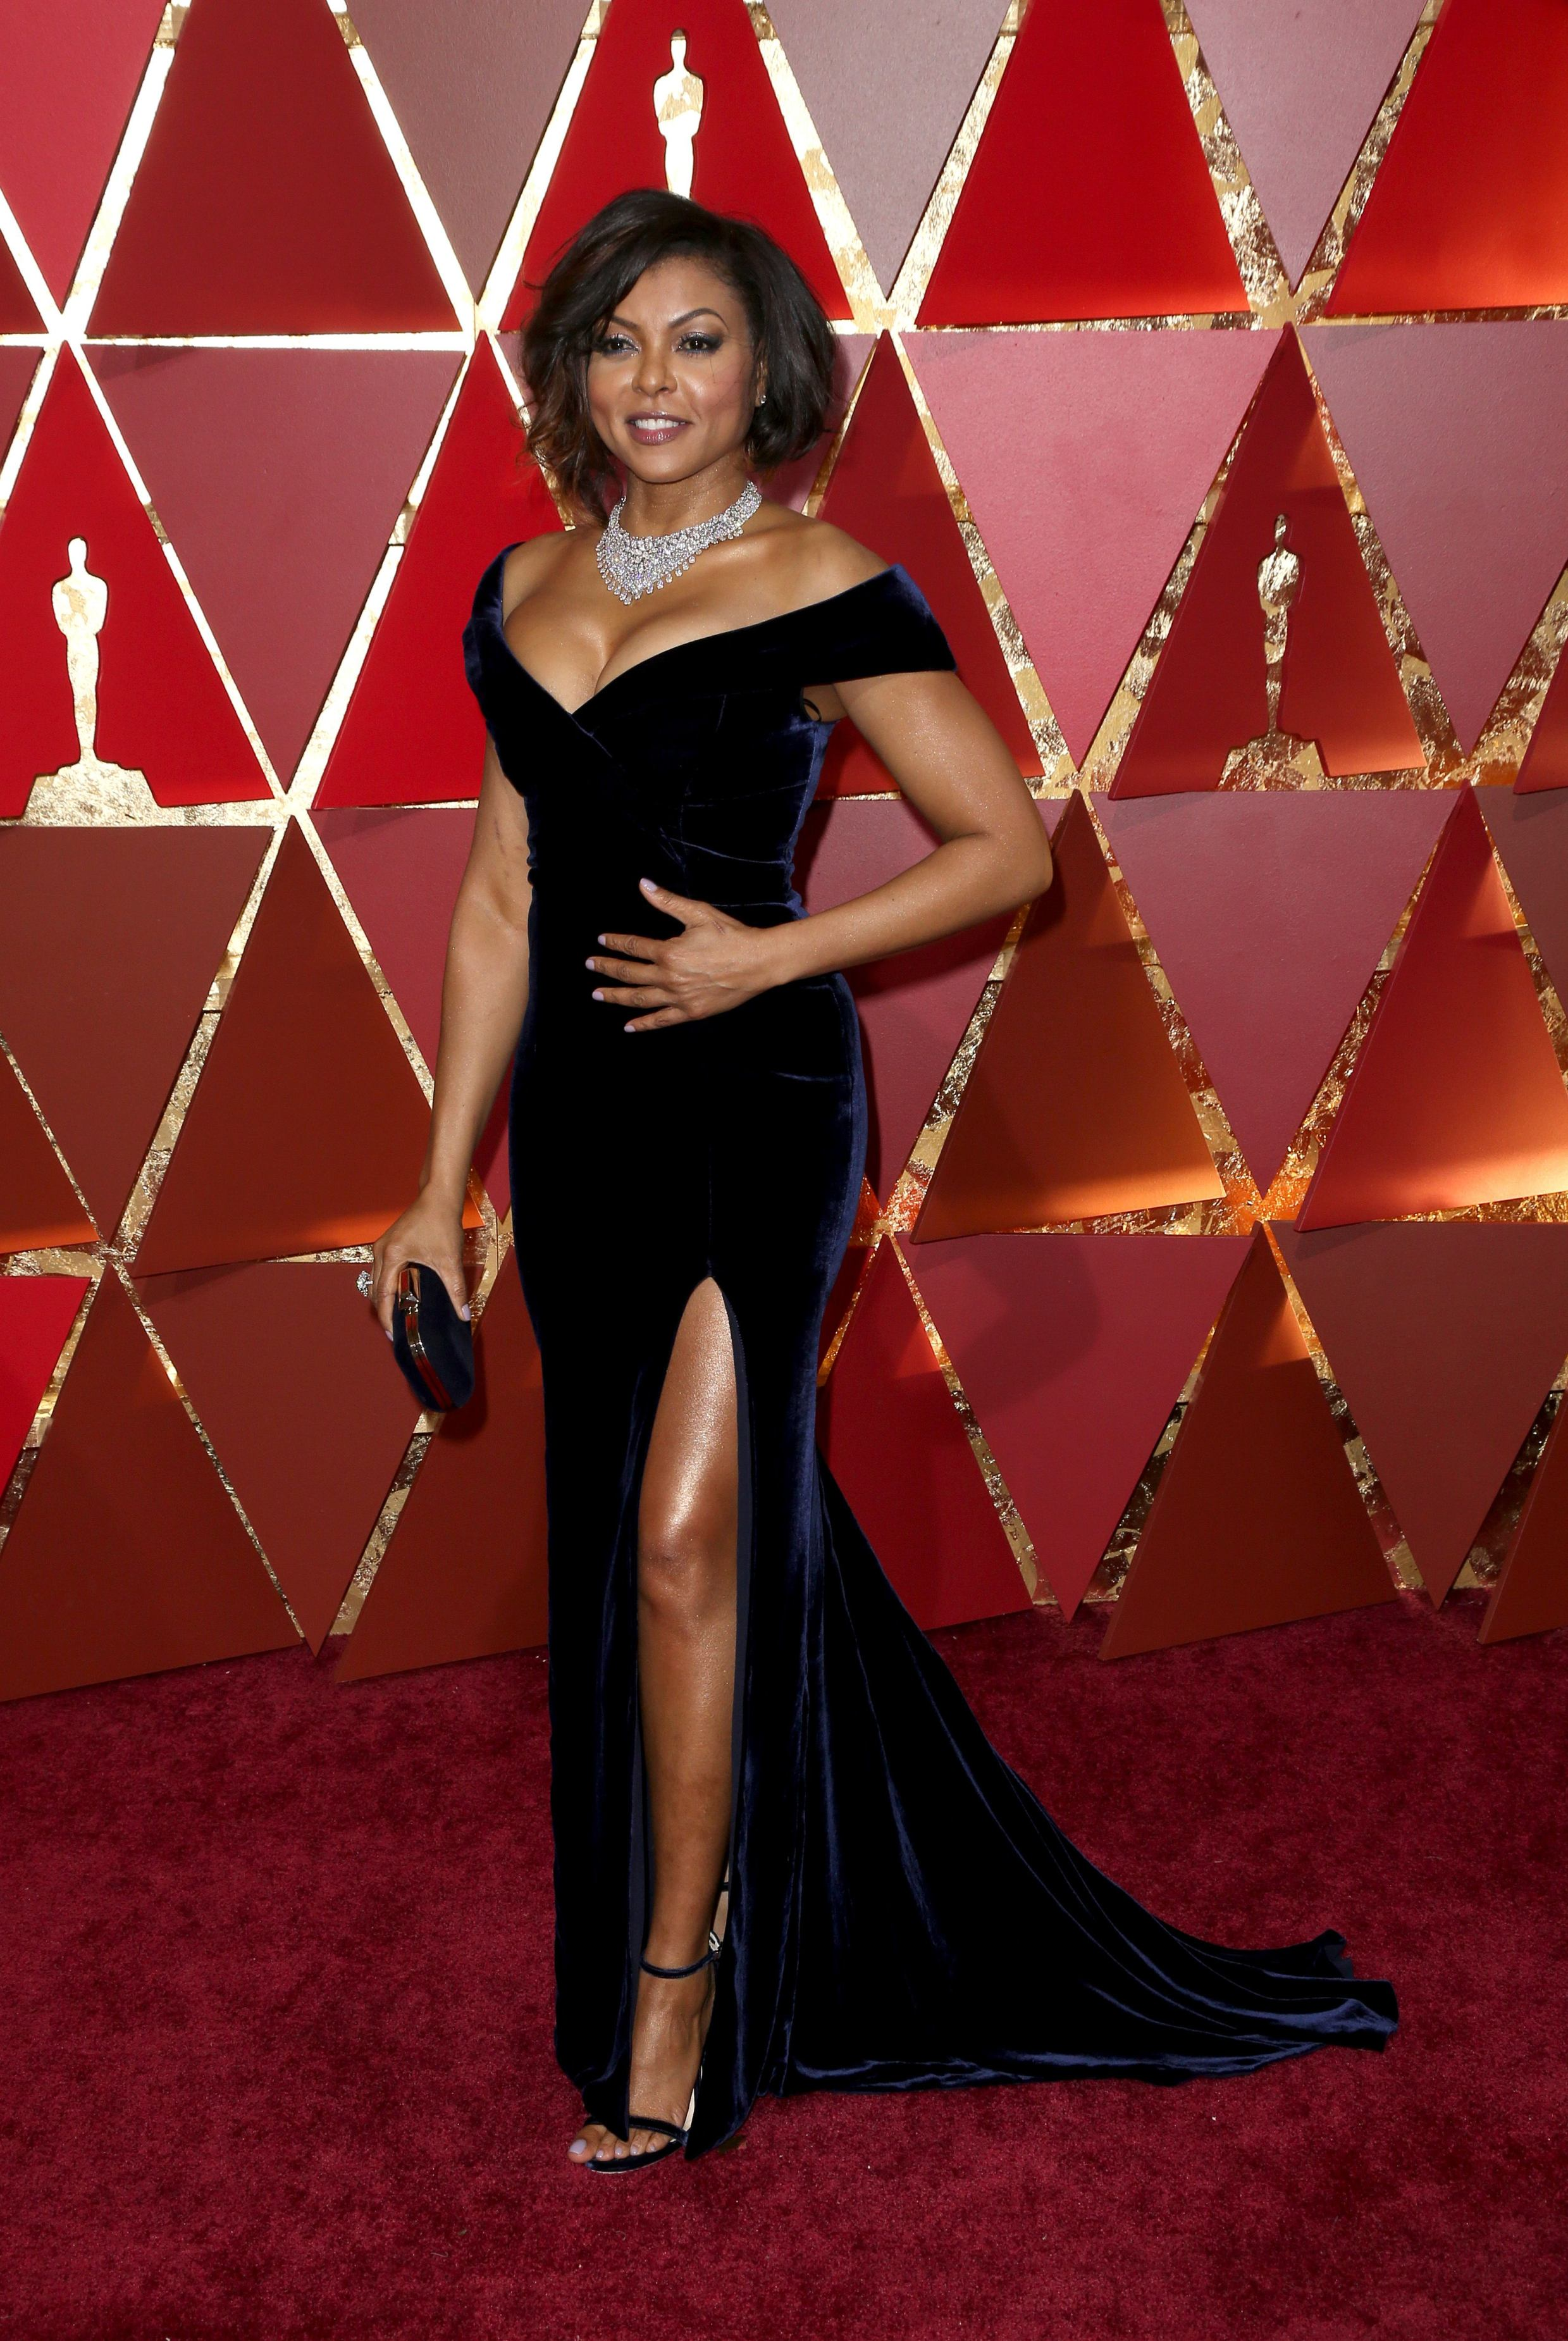 Mandatory Credit: Photo by Jim Smeal/BEI/Shutterstock (8434881tr) Taraji P. Henson 89th Annual Academy Awards, Arrivals, Los Angeles, USA - 26 Feb 2017